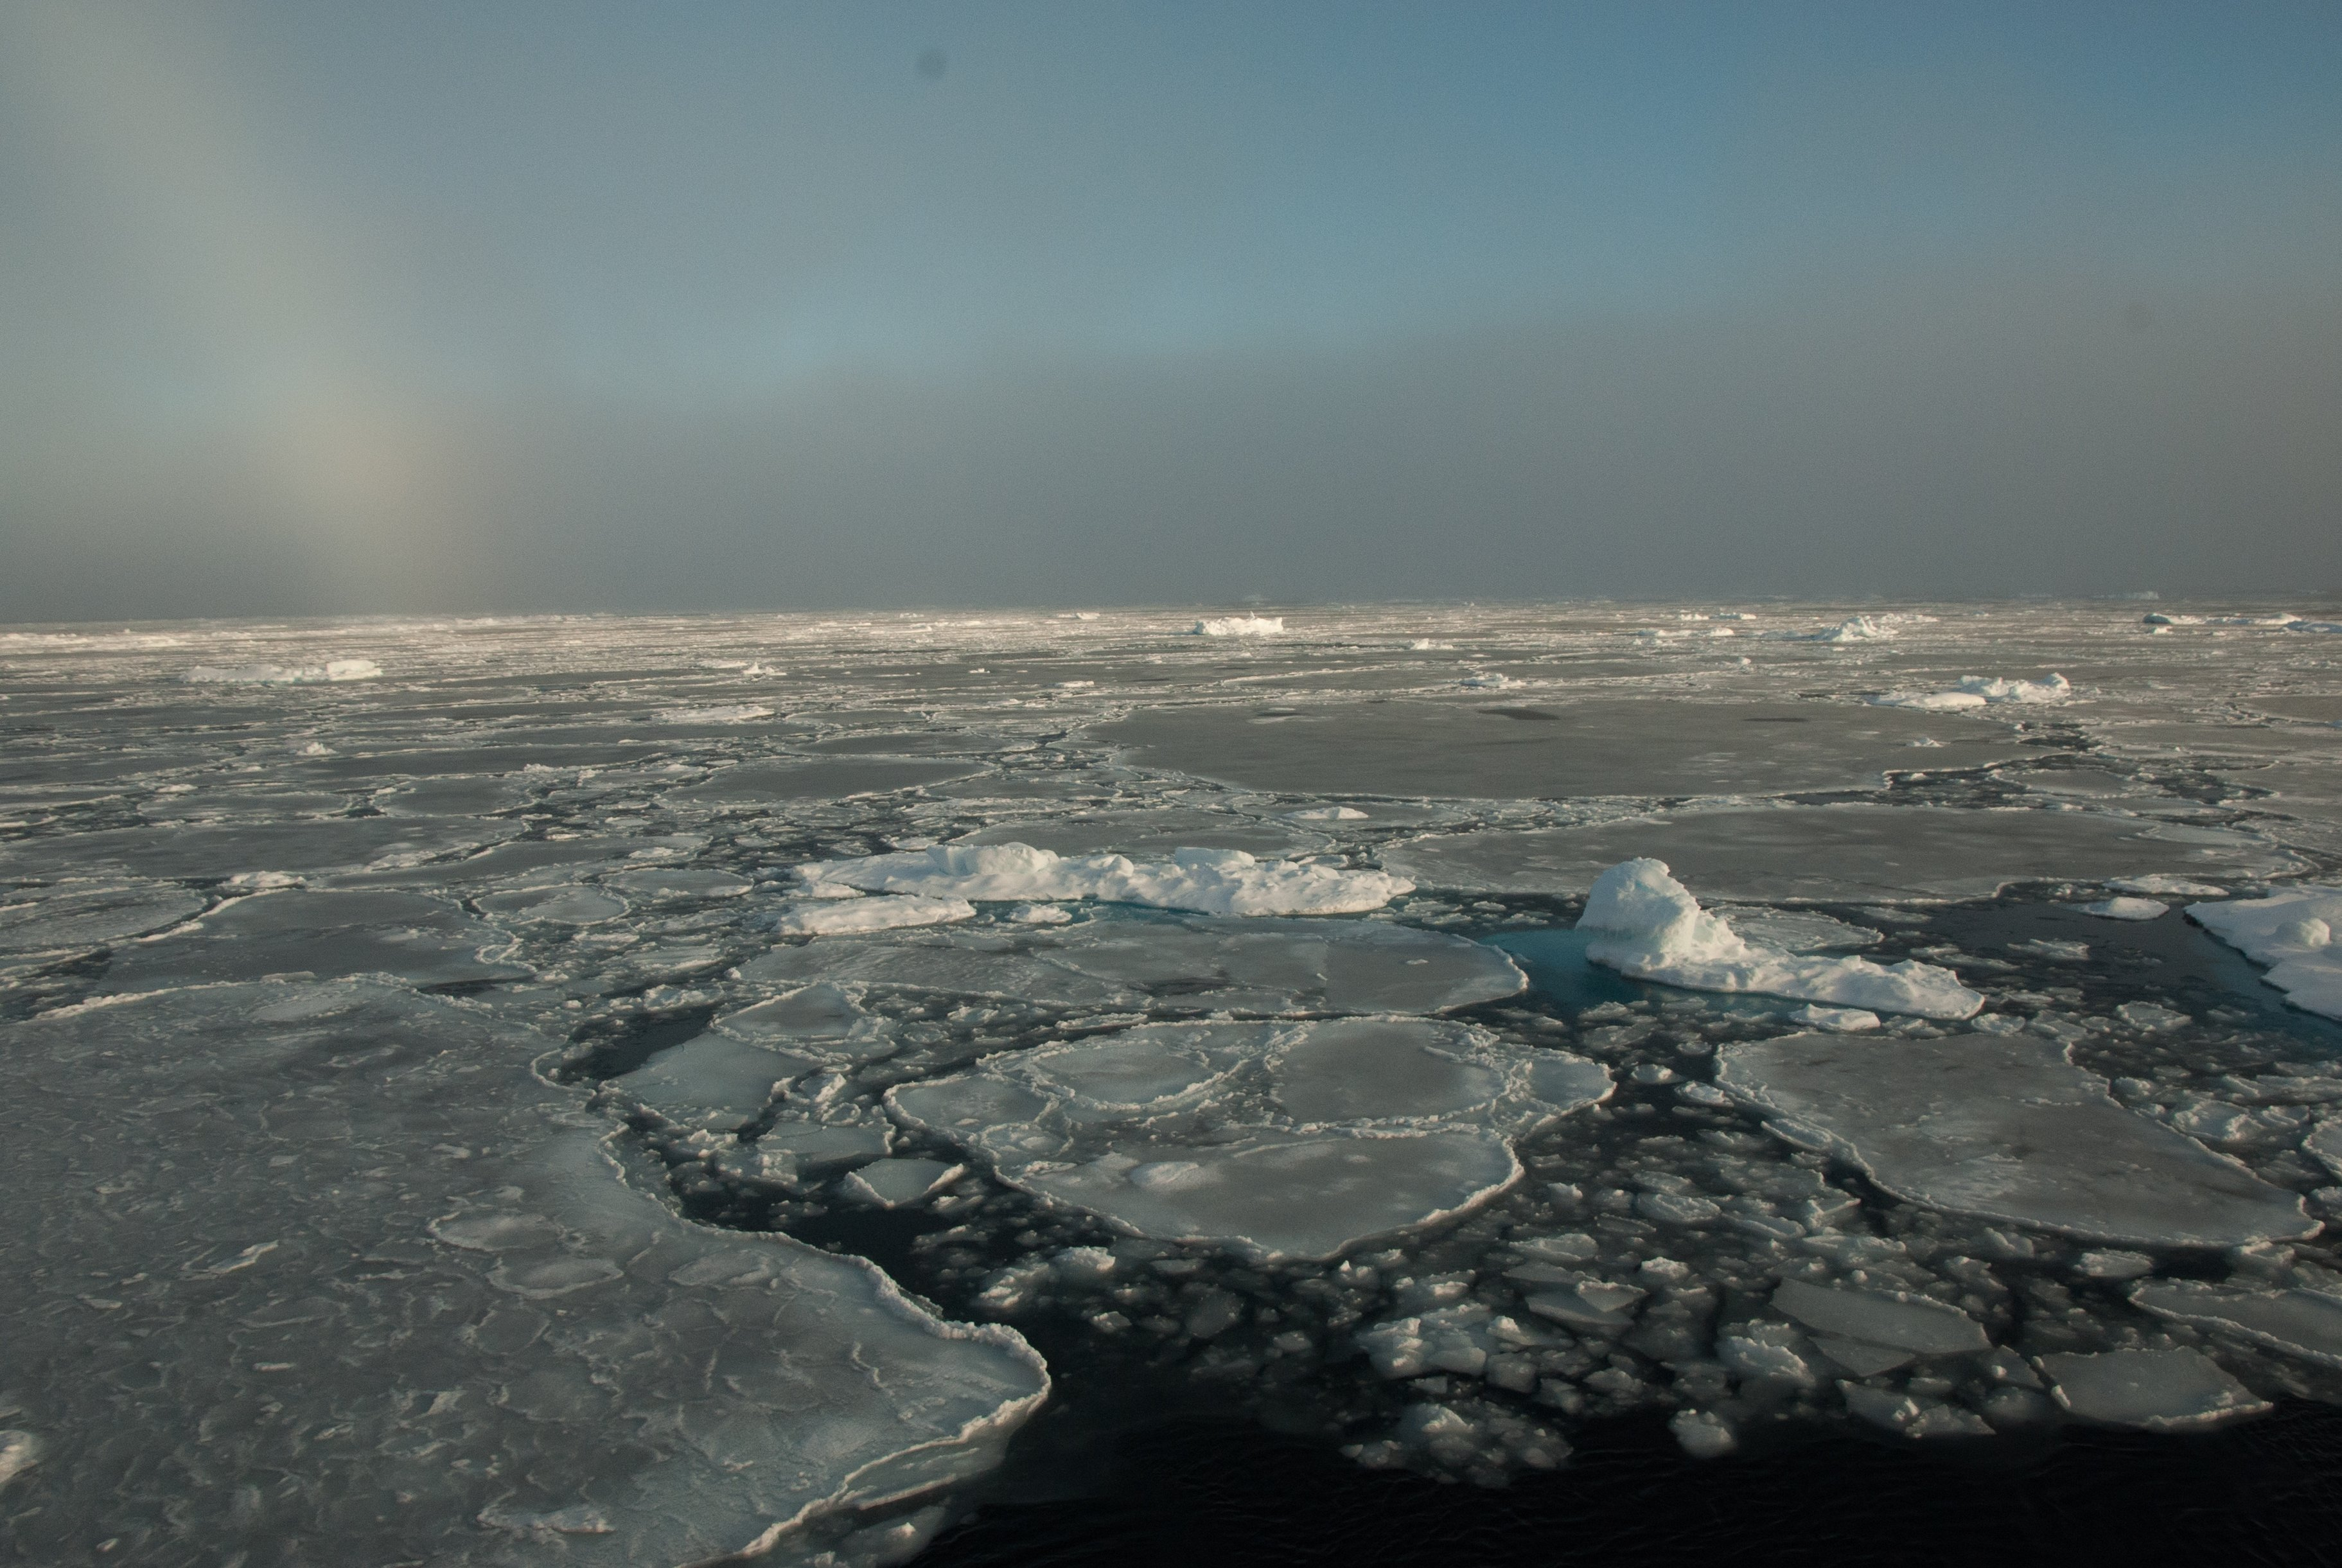 A new study further links warm Arctic temperatures with extreme weather at lower latitudes